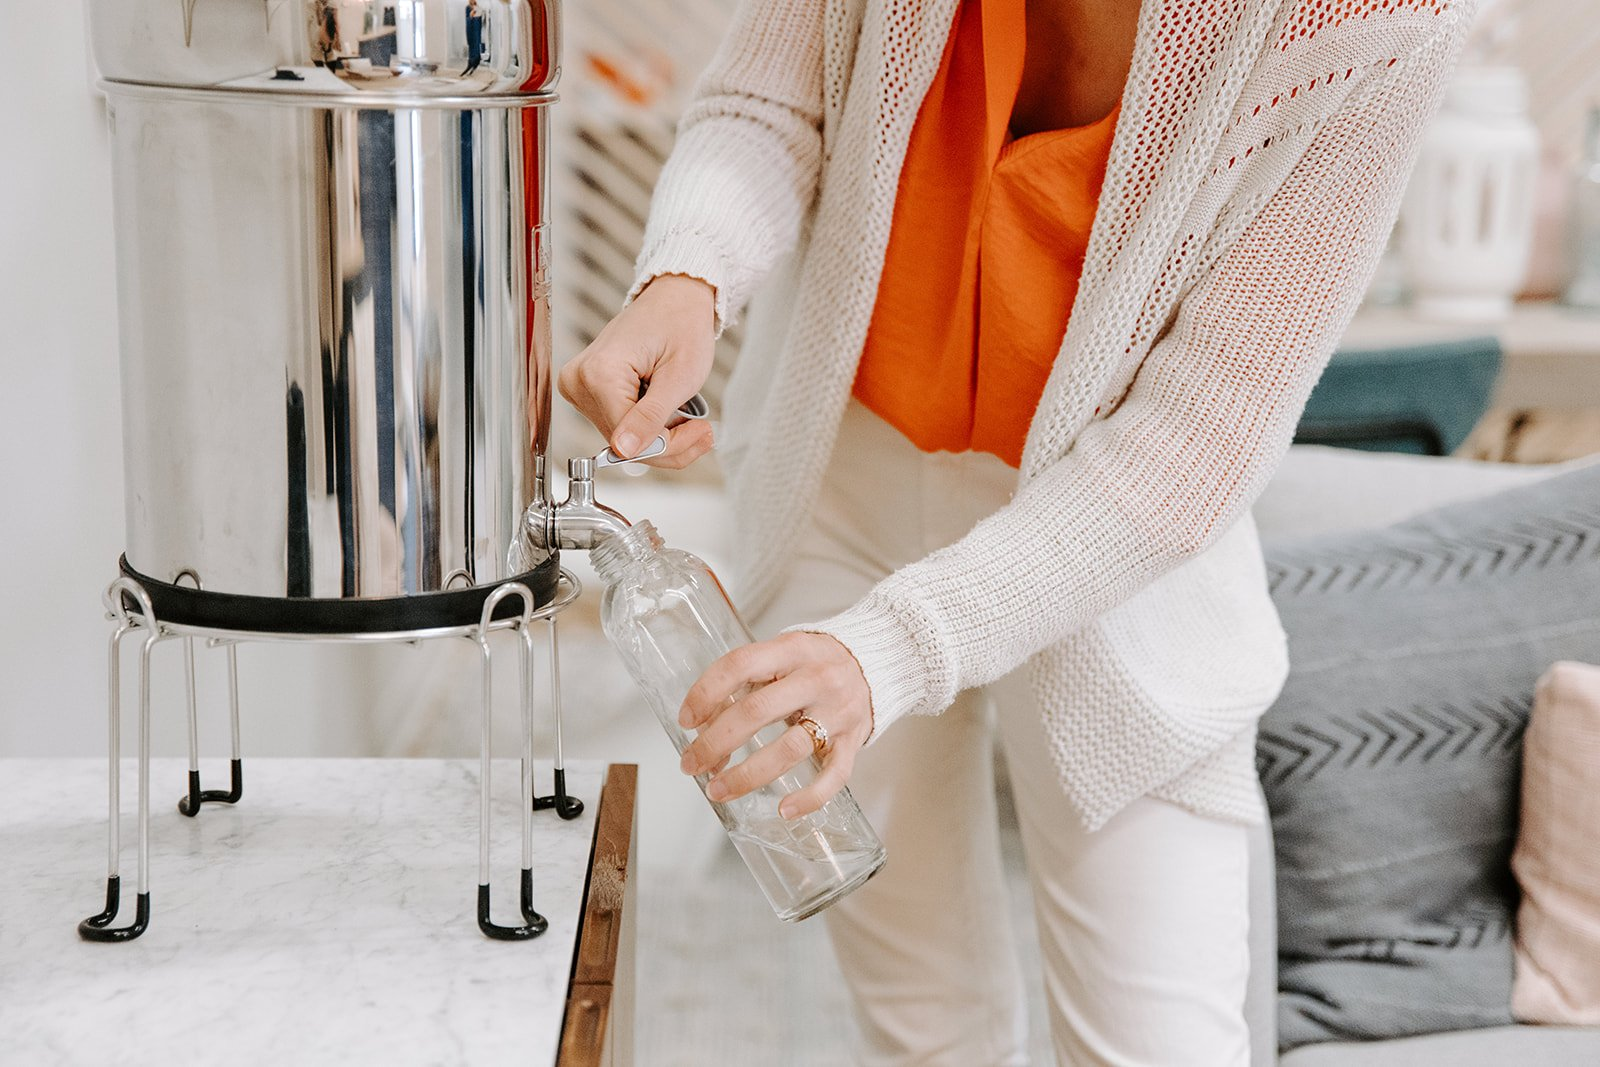 A woman in a white sweater fills her glass water bottle from a Berkey filter.